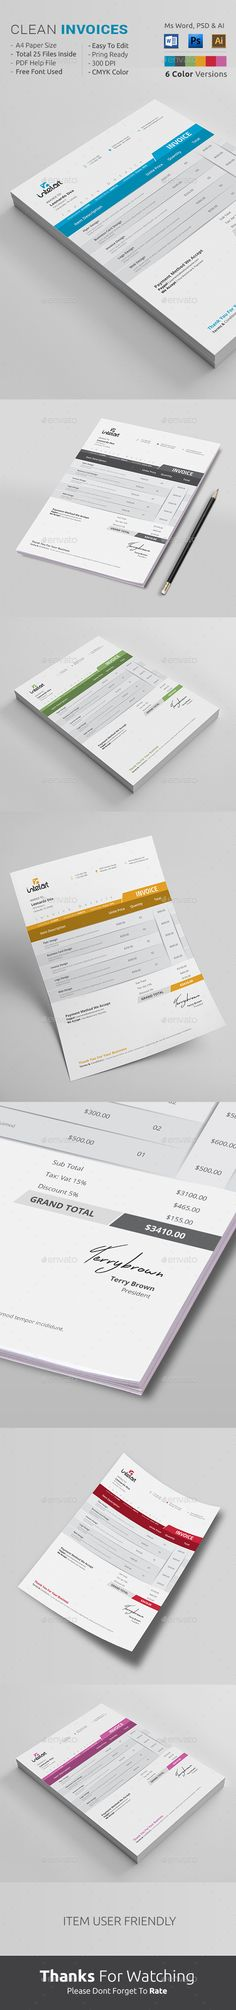 20 Creative Invoice \ Proposal Template Designs Template - microsoft office proposal templates